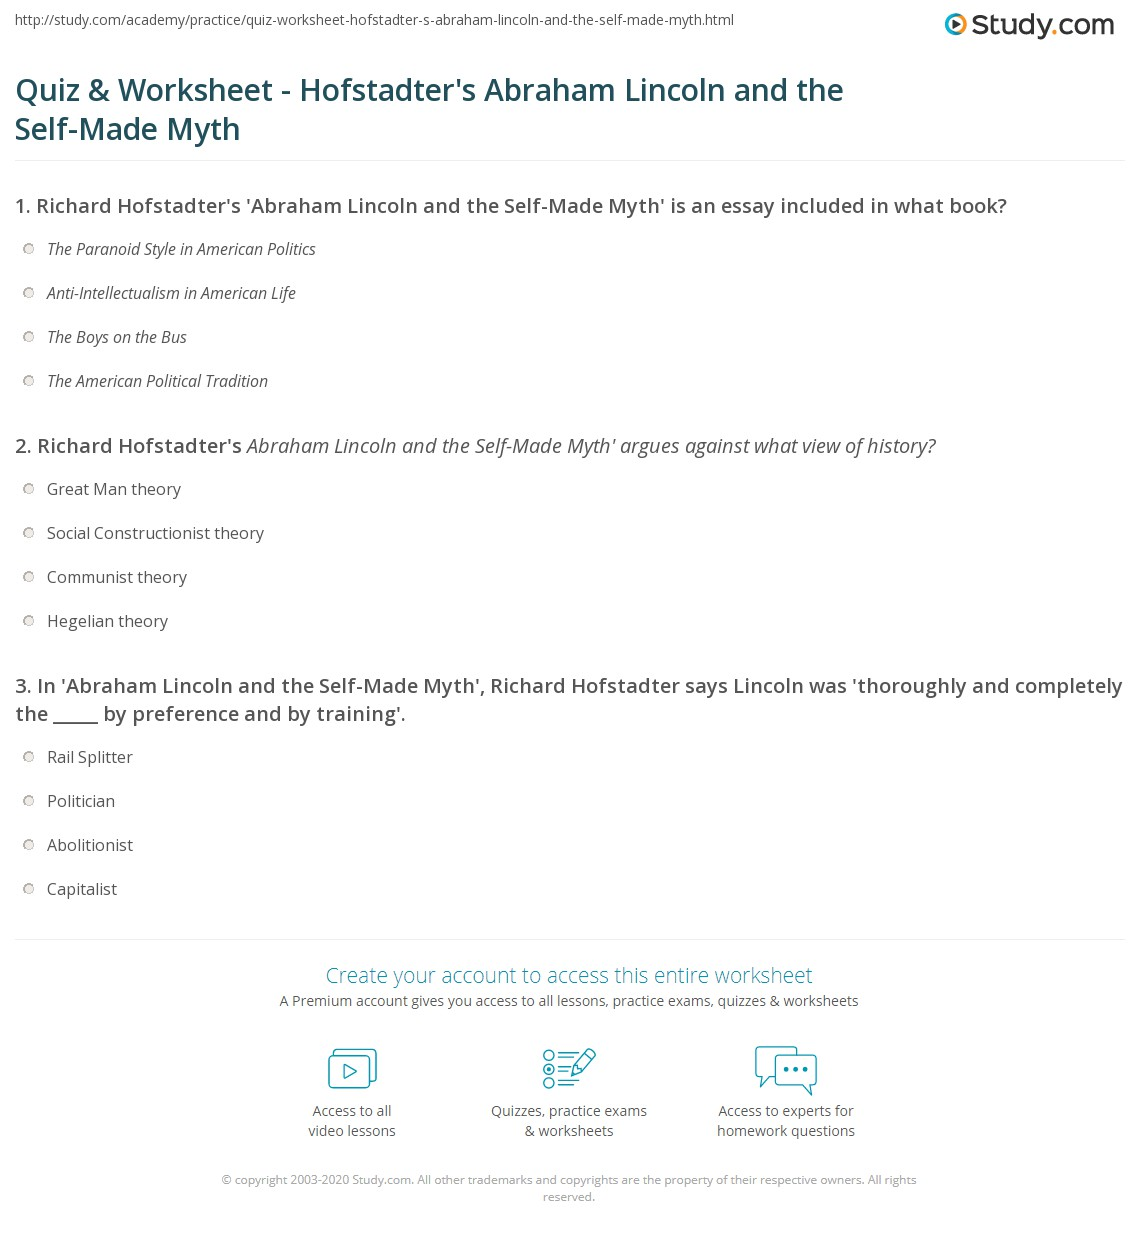 essay on abraham lincoln narrative essay about life debating the  quiz worksheet hofstadter s abraham lincoln and the self made print richard hofstadter s abraham lincoln